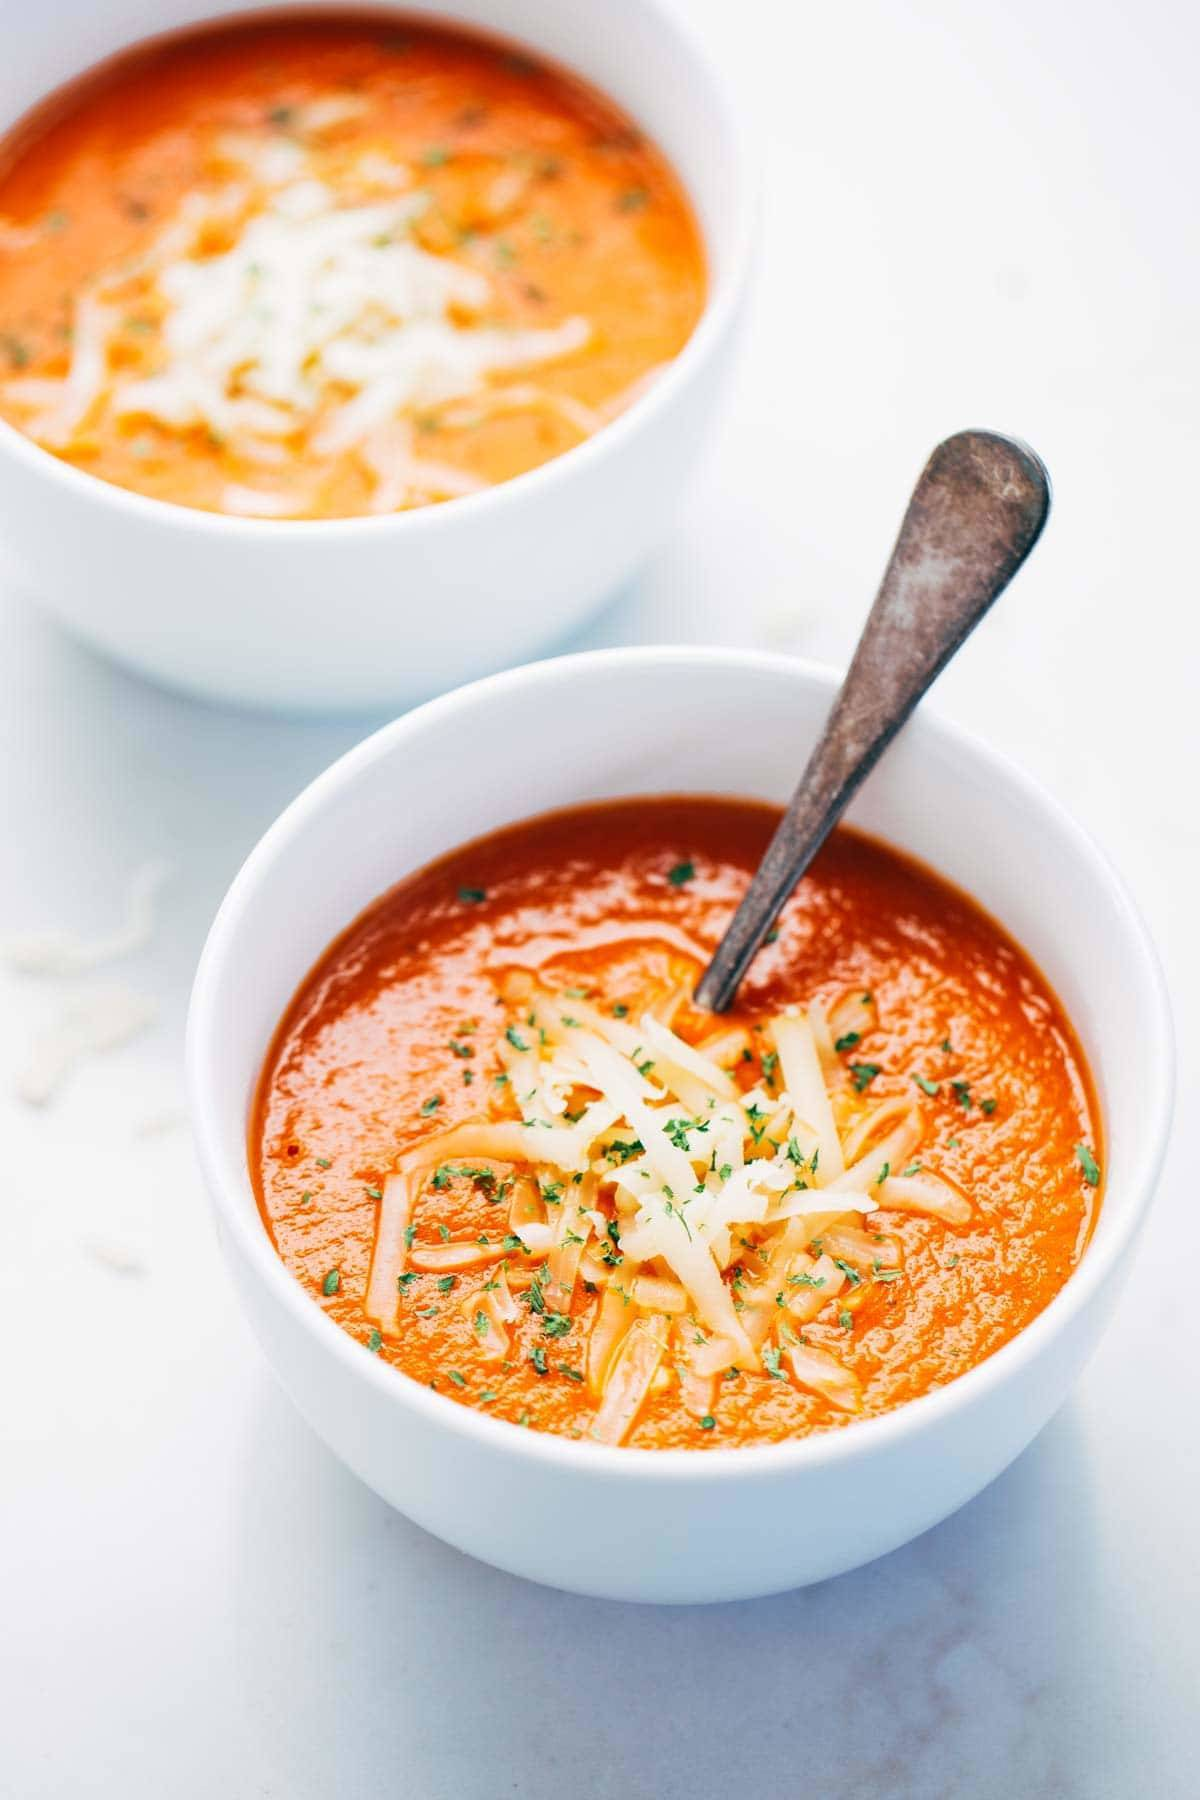 Simple Homemade Tomato Soup with carrots, onions, garlic, tomatoes, broth, and bacon for deliciously rich flavor. Extremely easy to make!   pinchfoyum.com